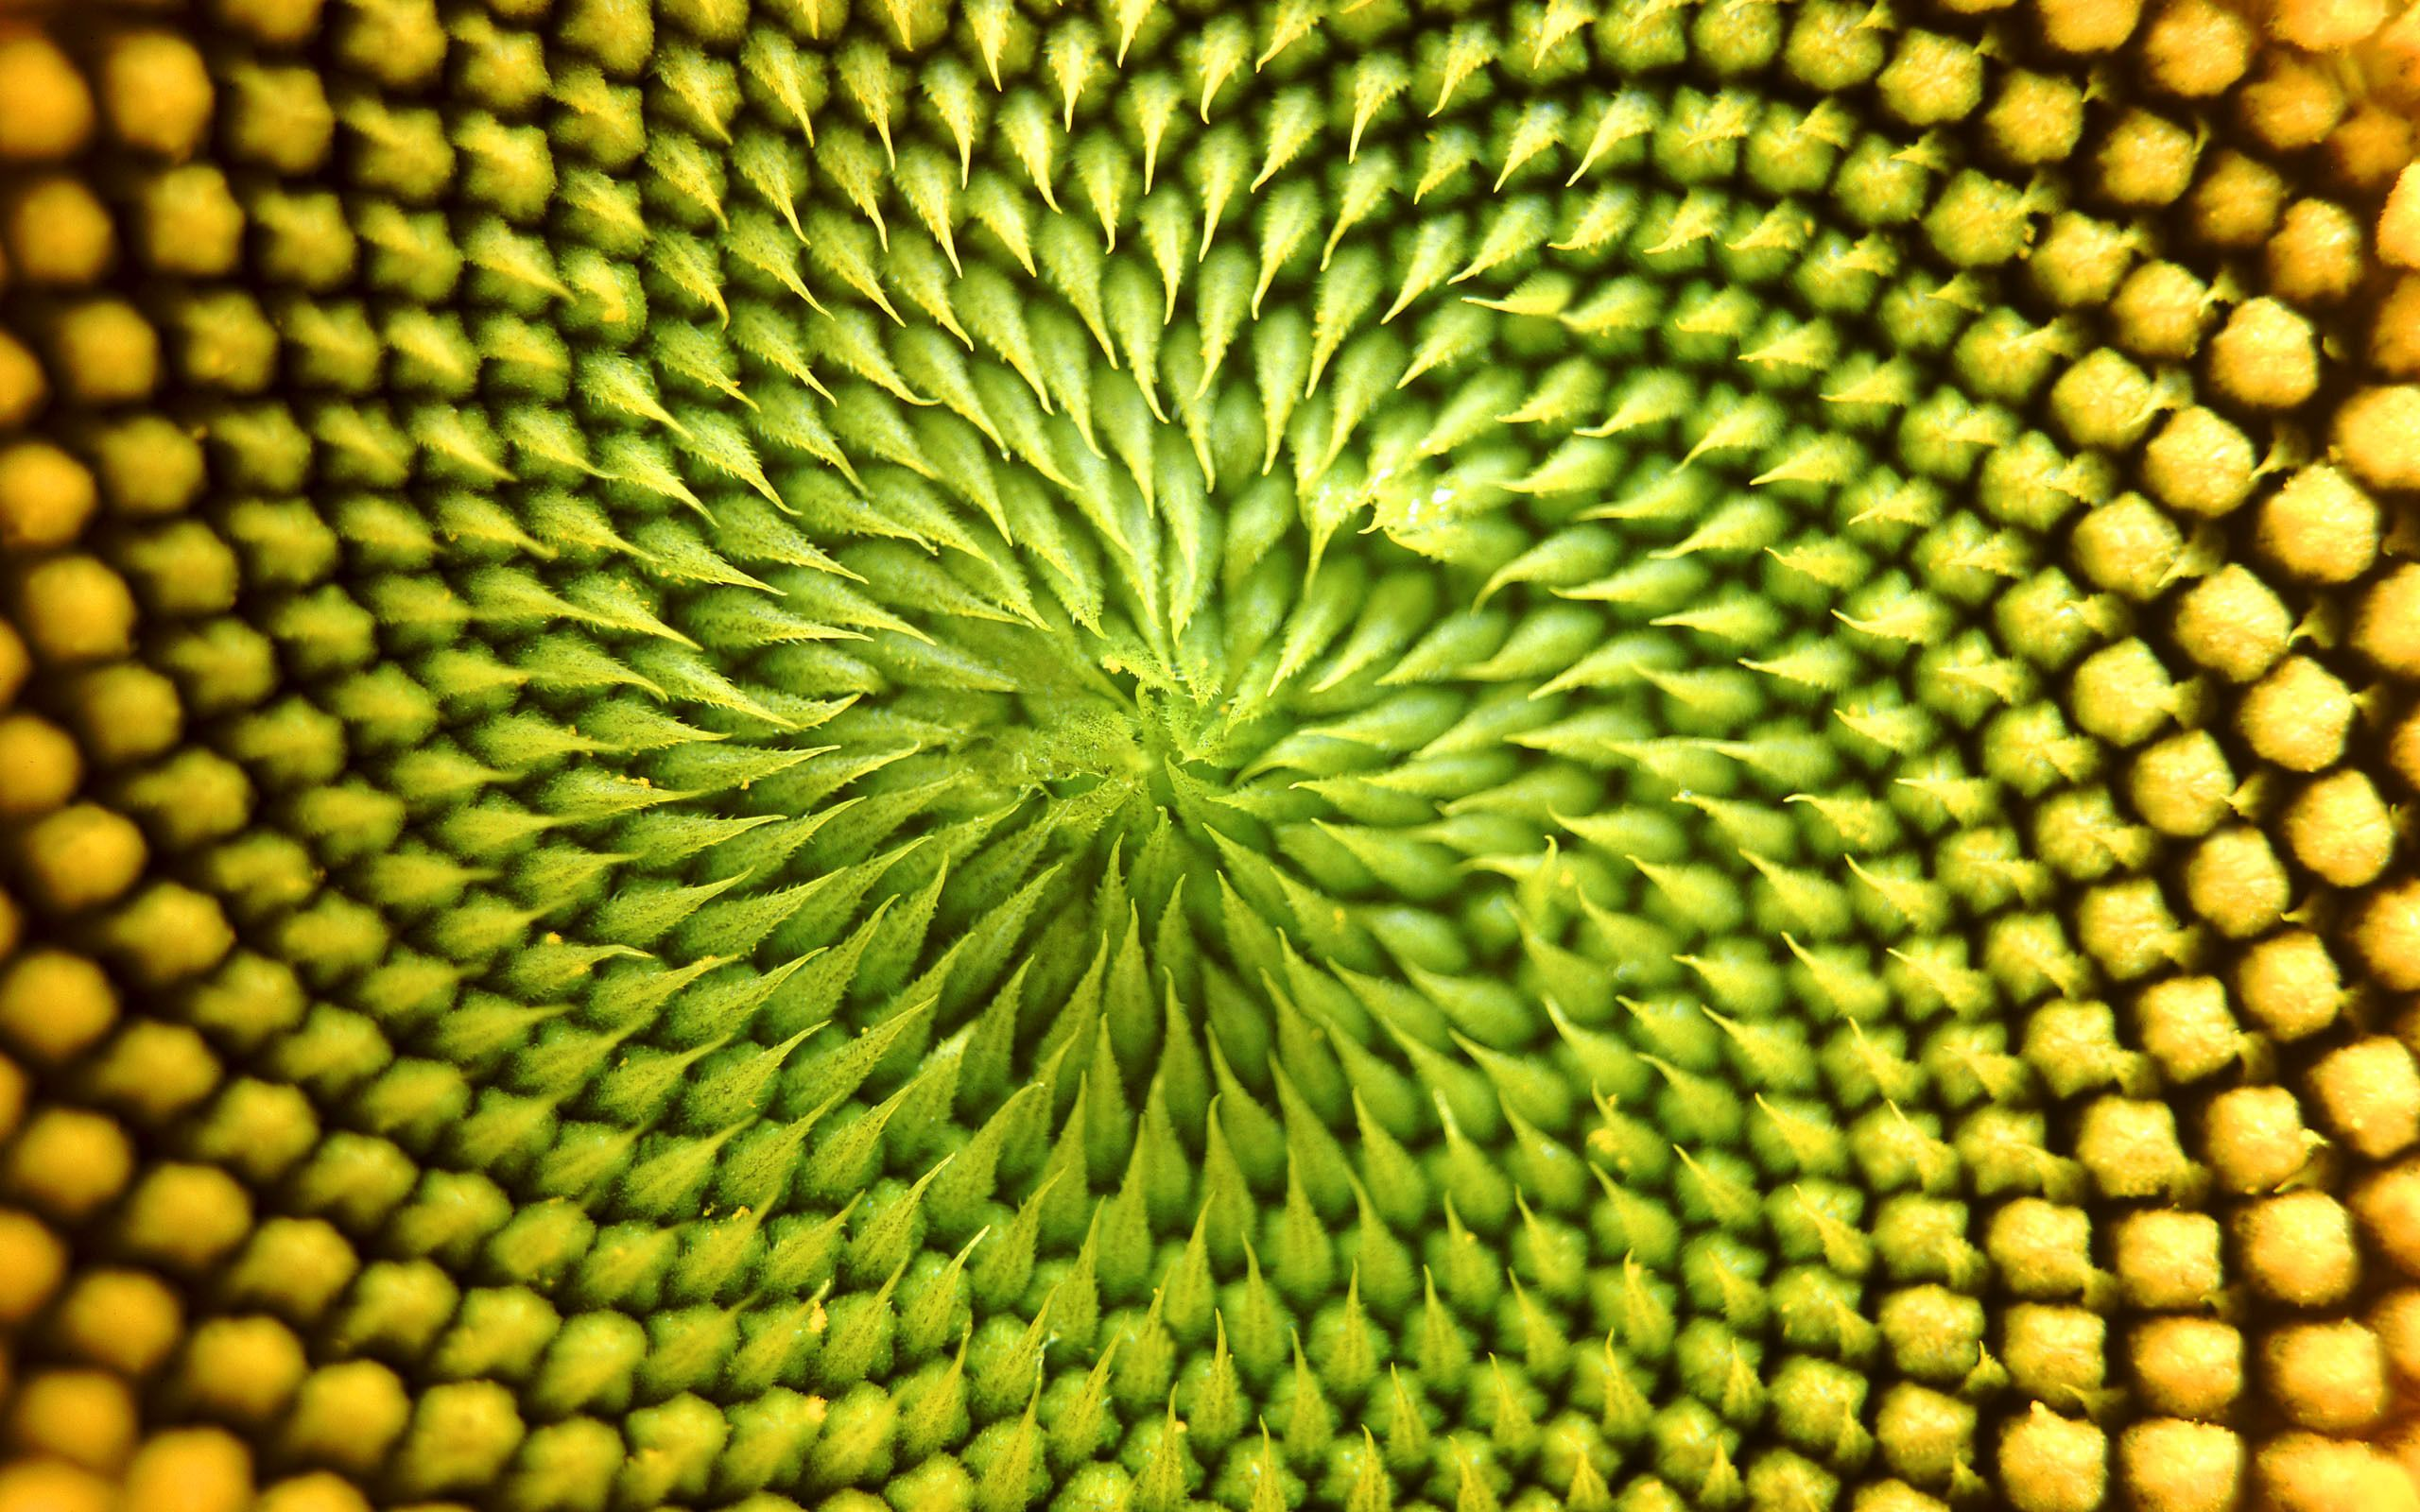 Fractal Nature Google Search Patterns In Nature Sunflower